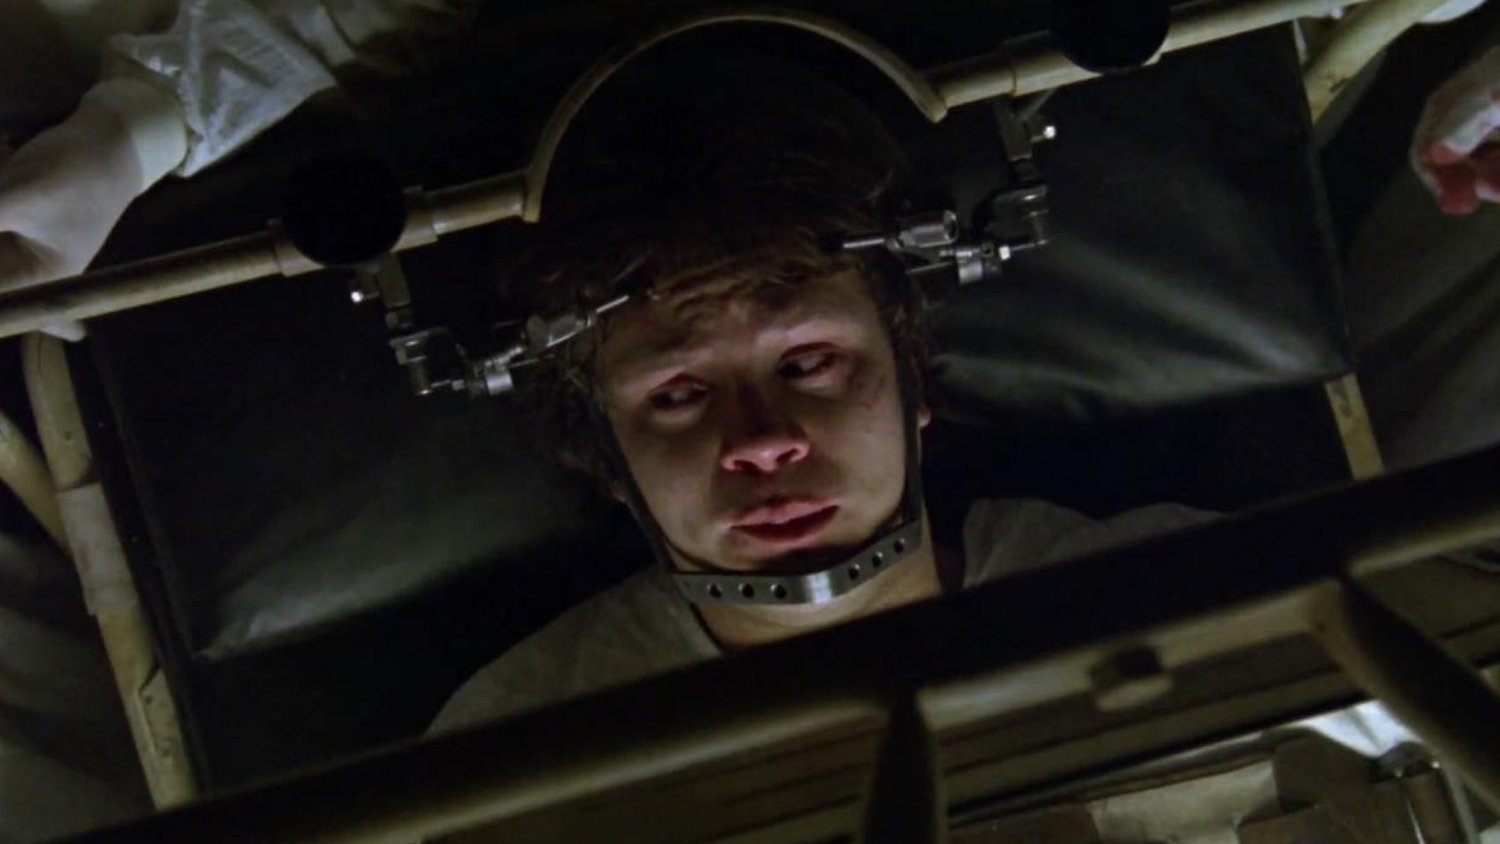 Jacob (Tim Robbins) drawn into a nightmare in which he is tortured in a hospital in Jacob's Ladder (1990)